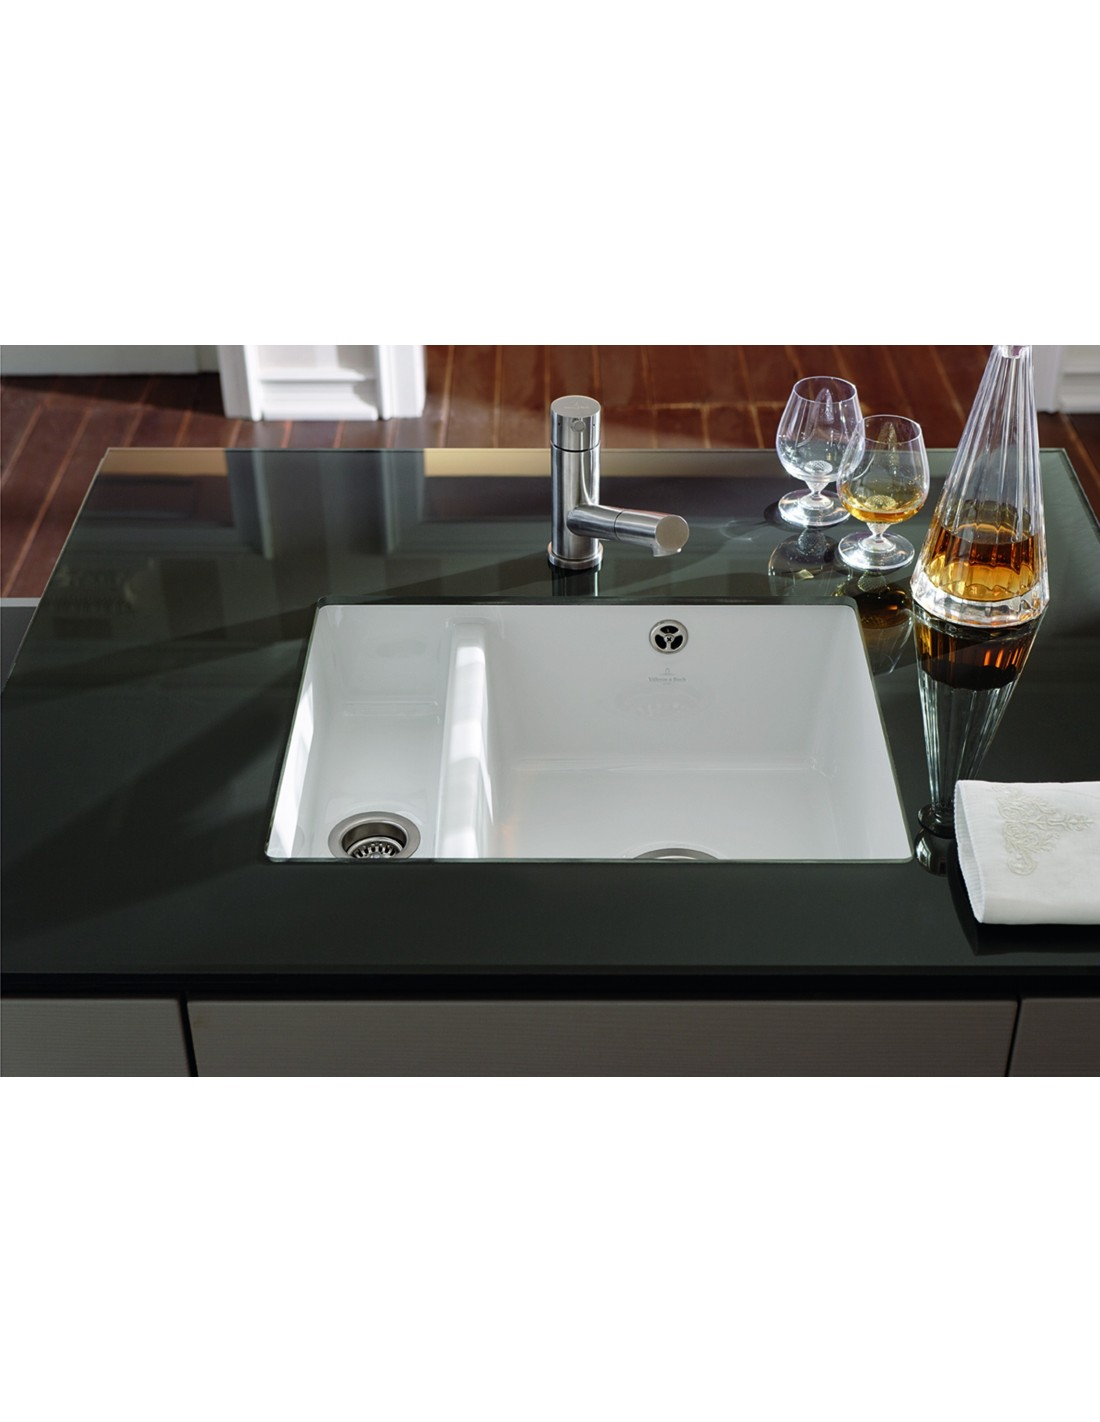 Villeroy & Boch Subway 60XU kitchen sink, Undermount 1.5 Bowl ...